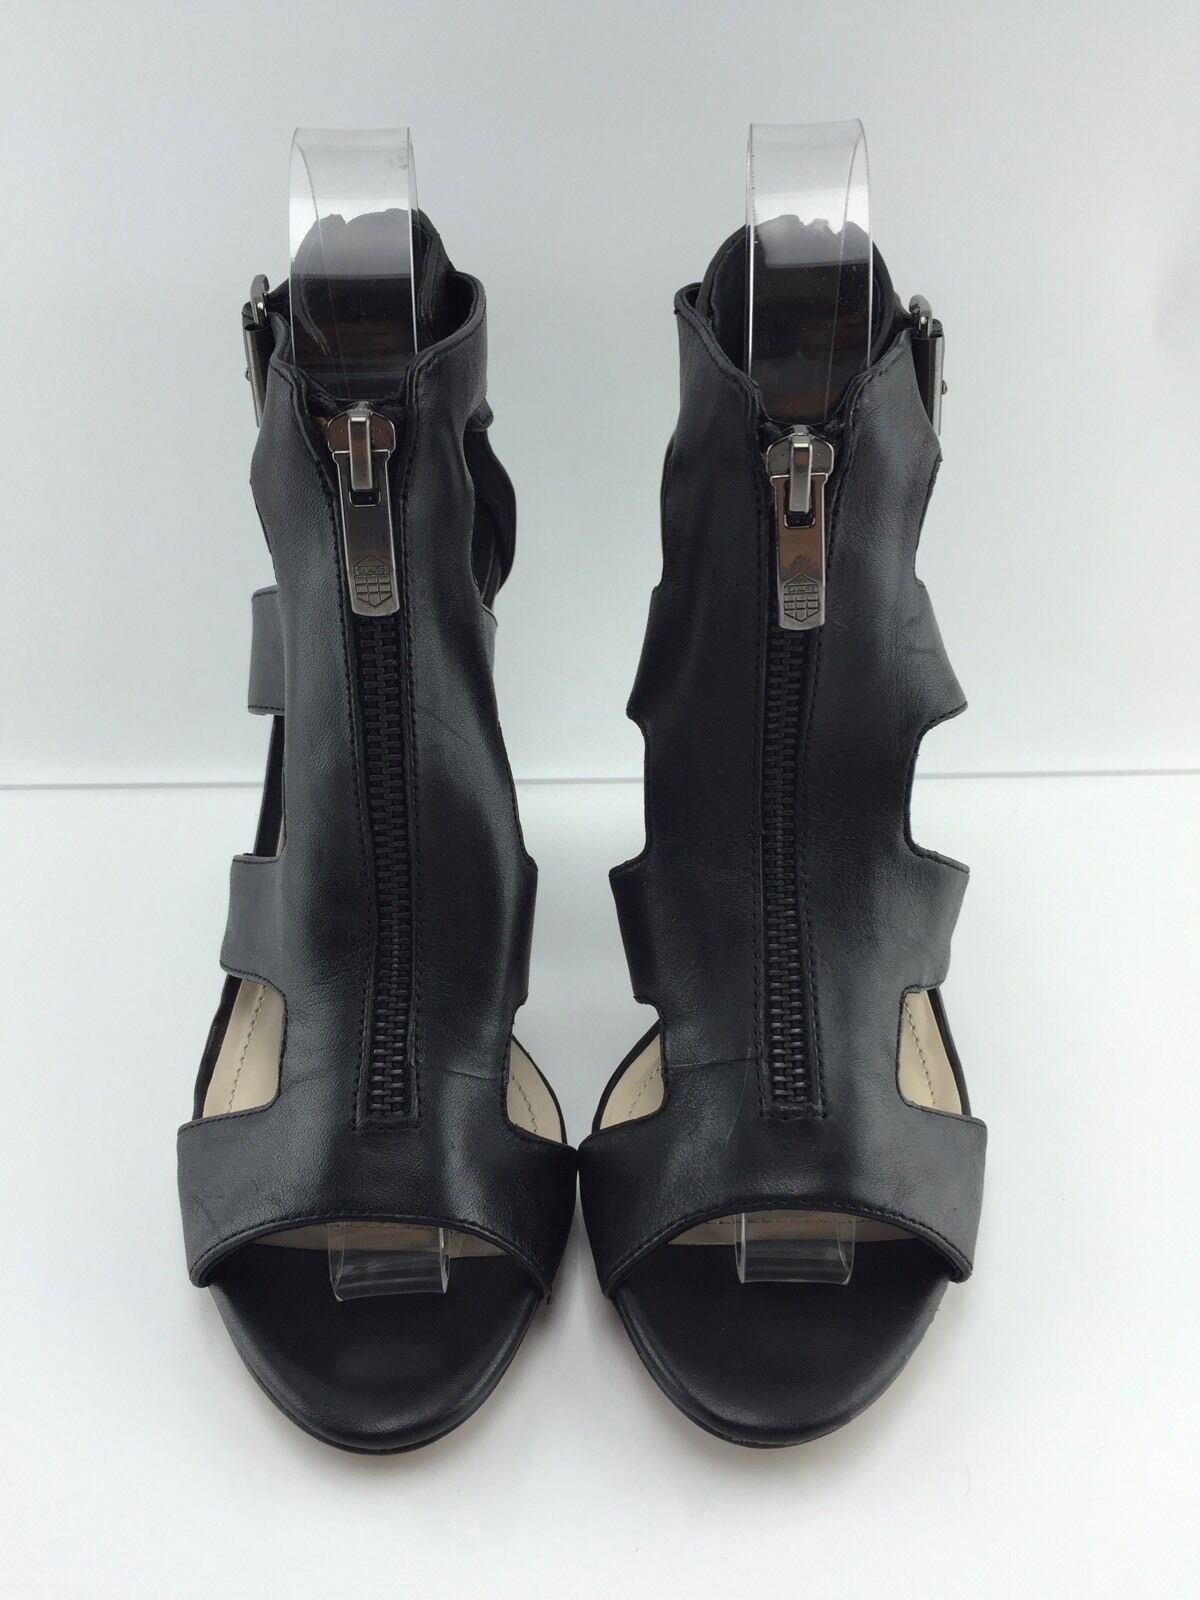 Vince Camuto Camuto Camuto Women's Black Leather Sandals 6 M e0b51c